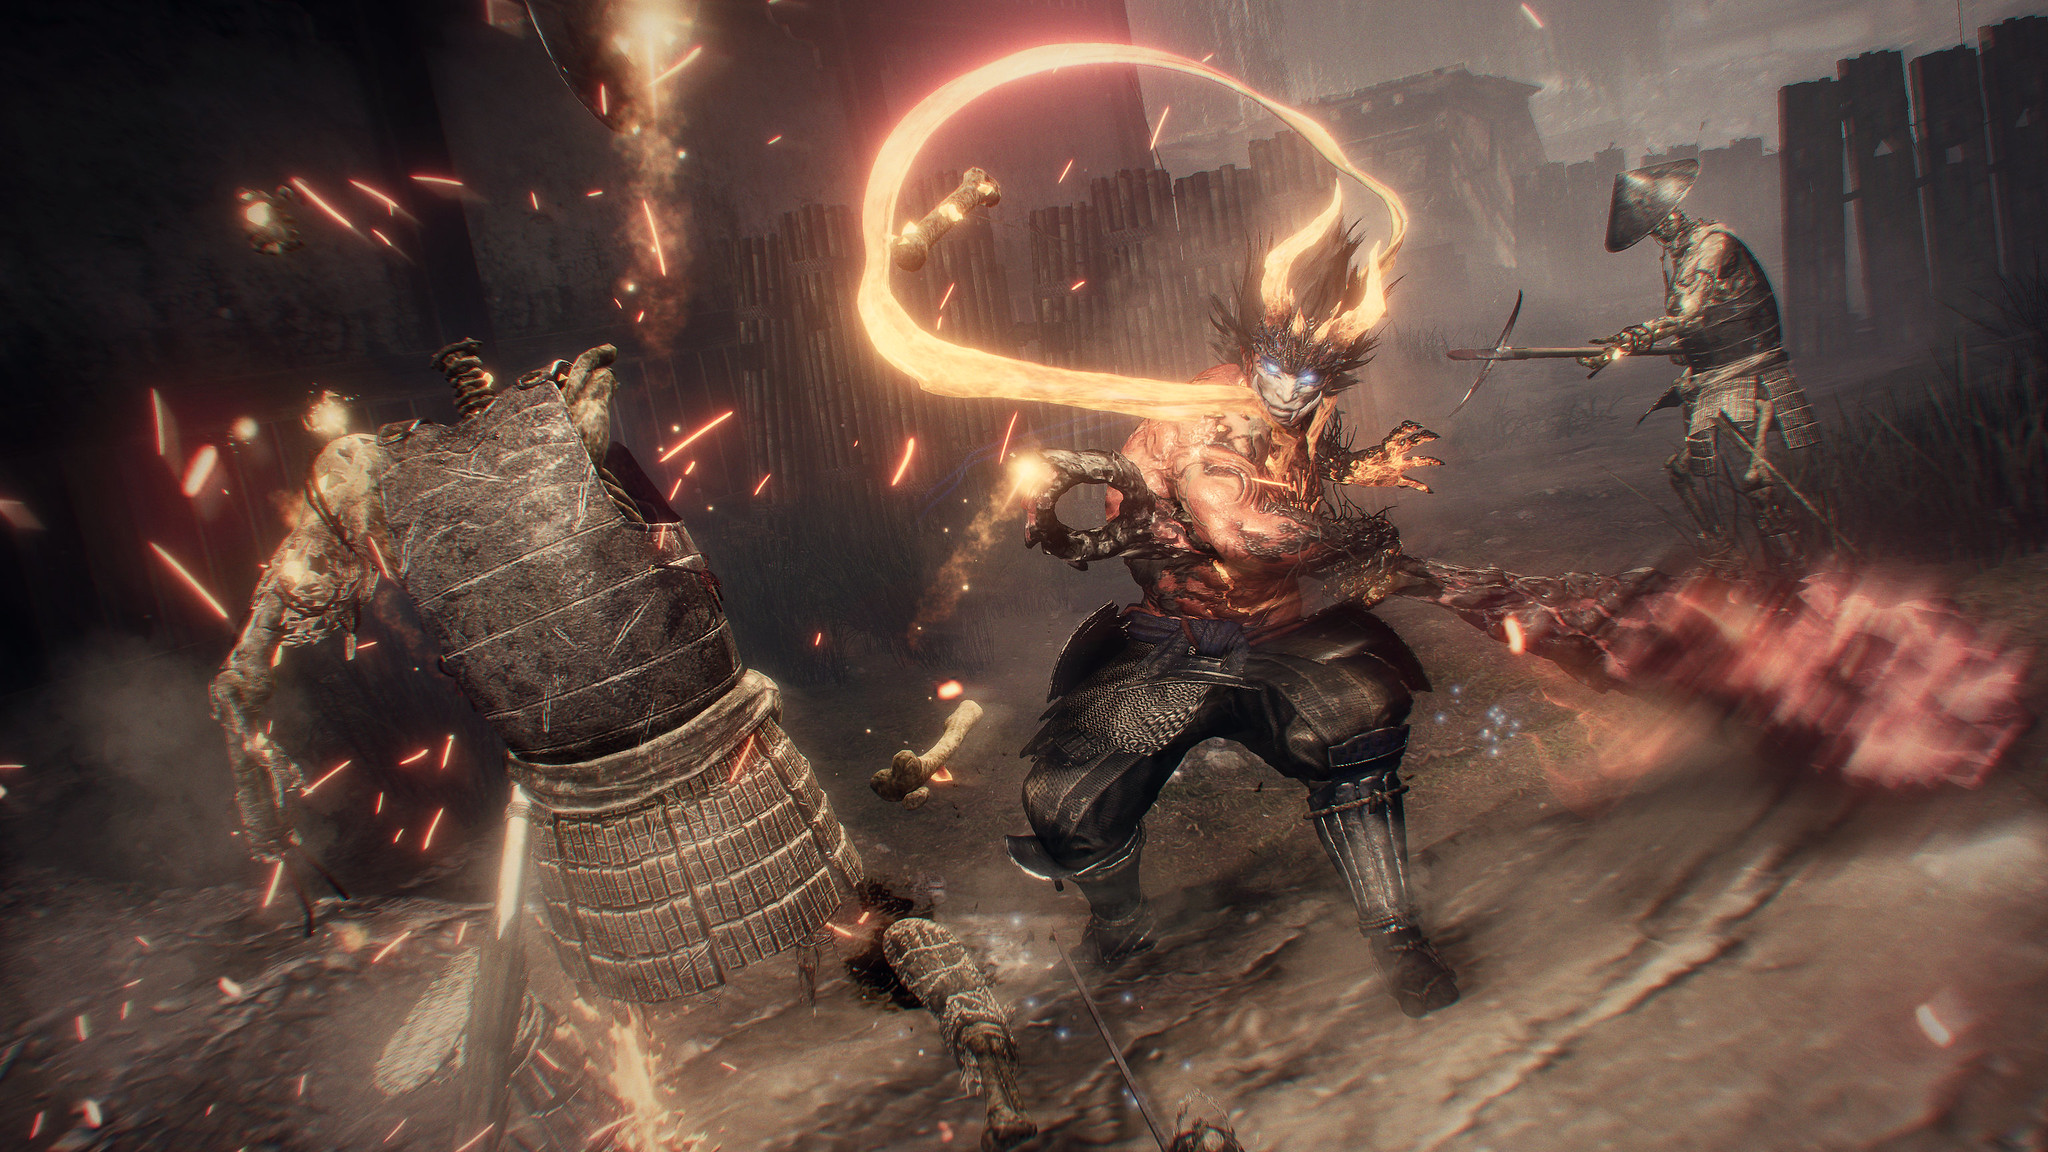 Nioh remasters are coming to PS5 on February 5th